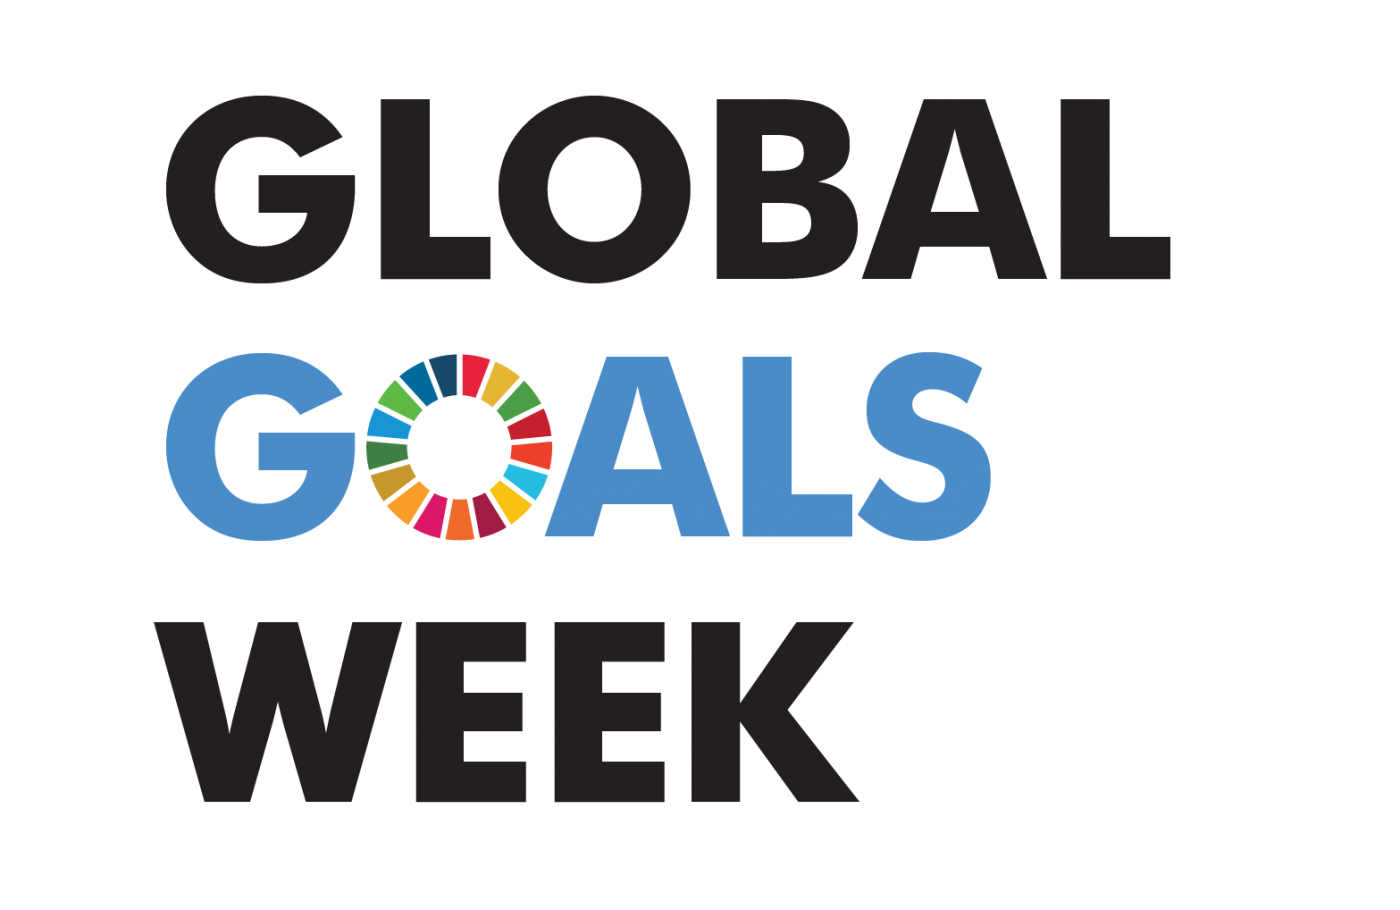 The Foundation takes part in Global Action Week for SDGs